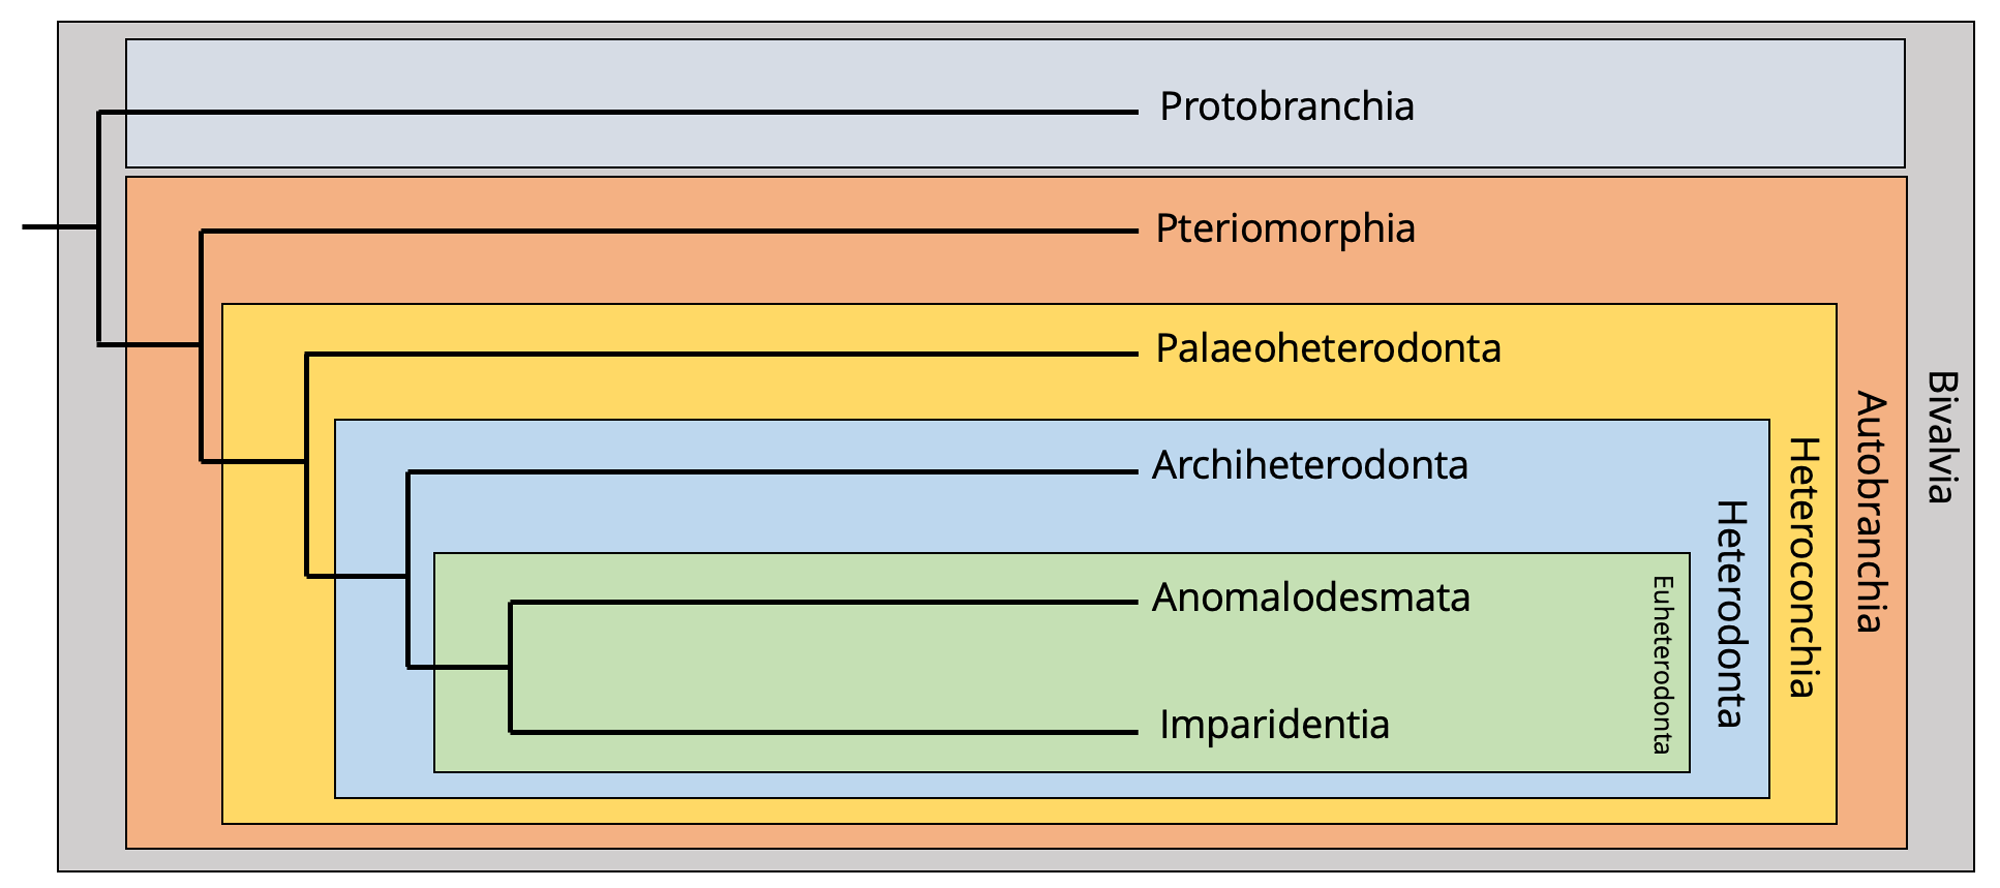 Image showing a phylogeny of bivalves.